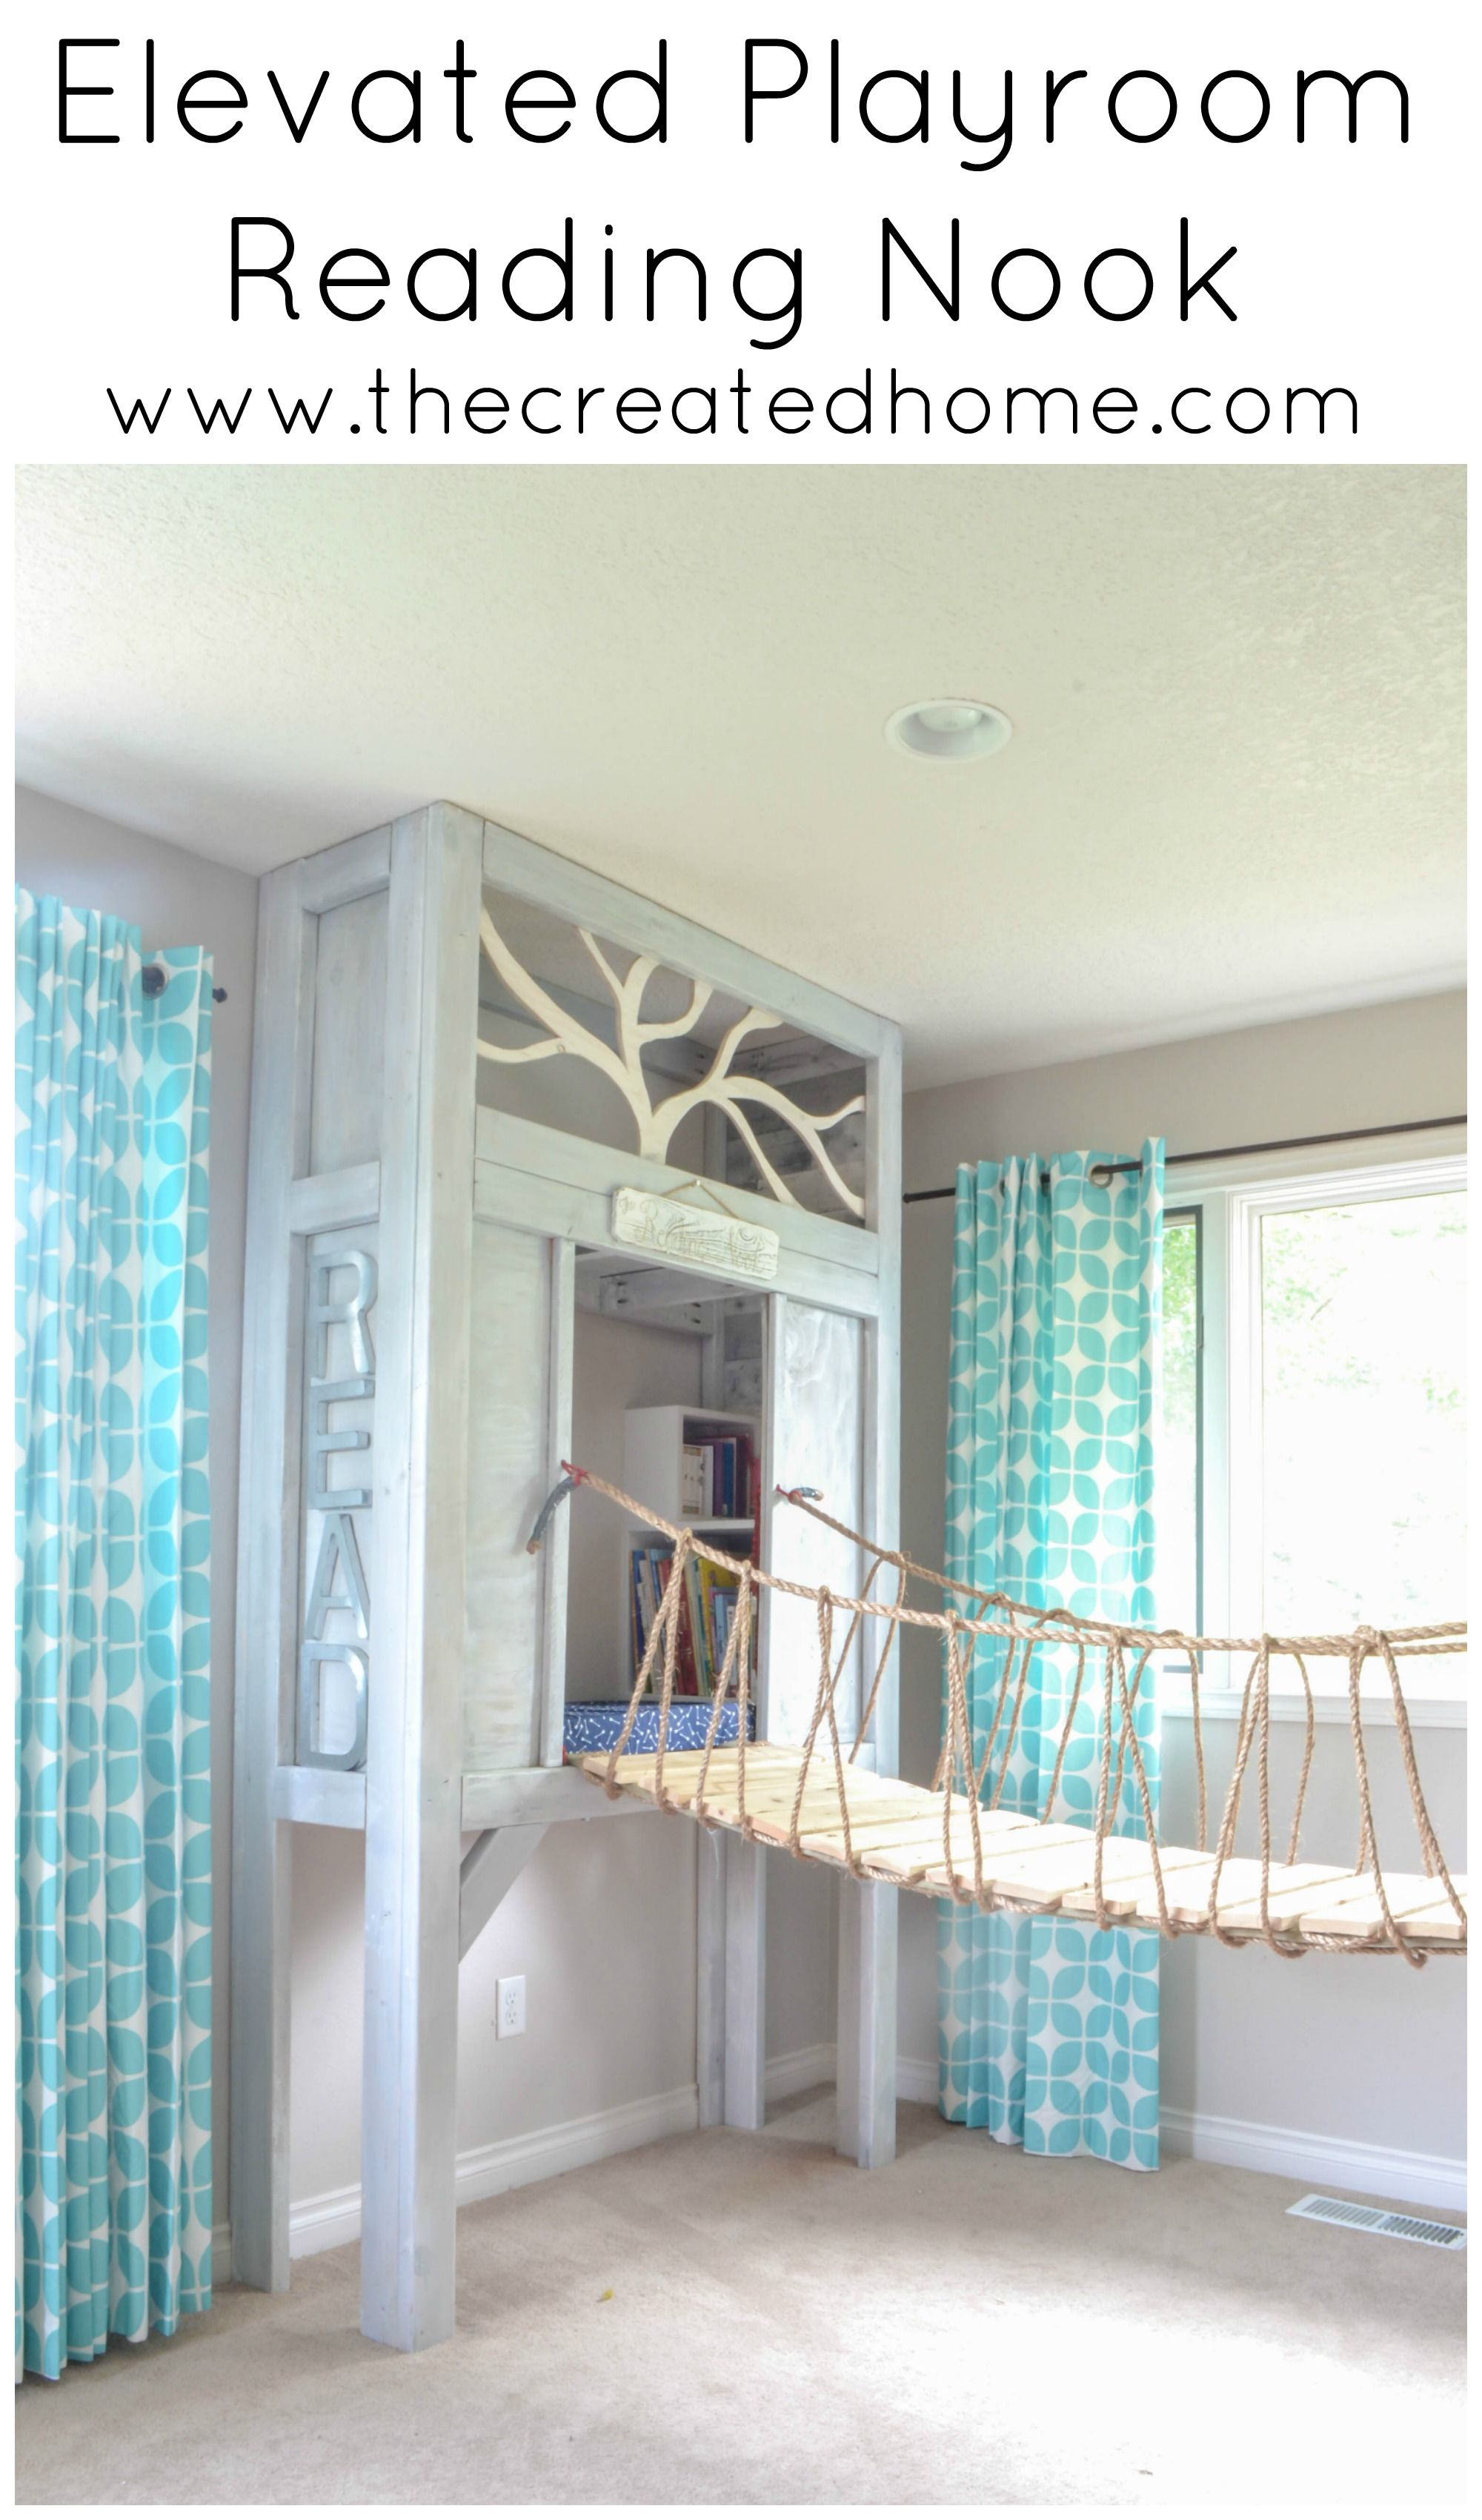 How to build an elevated reading nook remodelaholic contributors pinterest reading nooks - Cool teenage room ideas ...